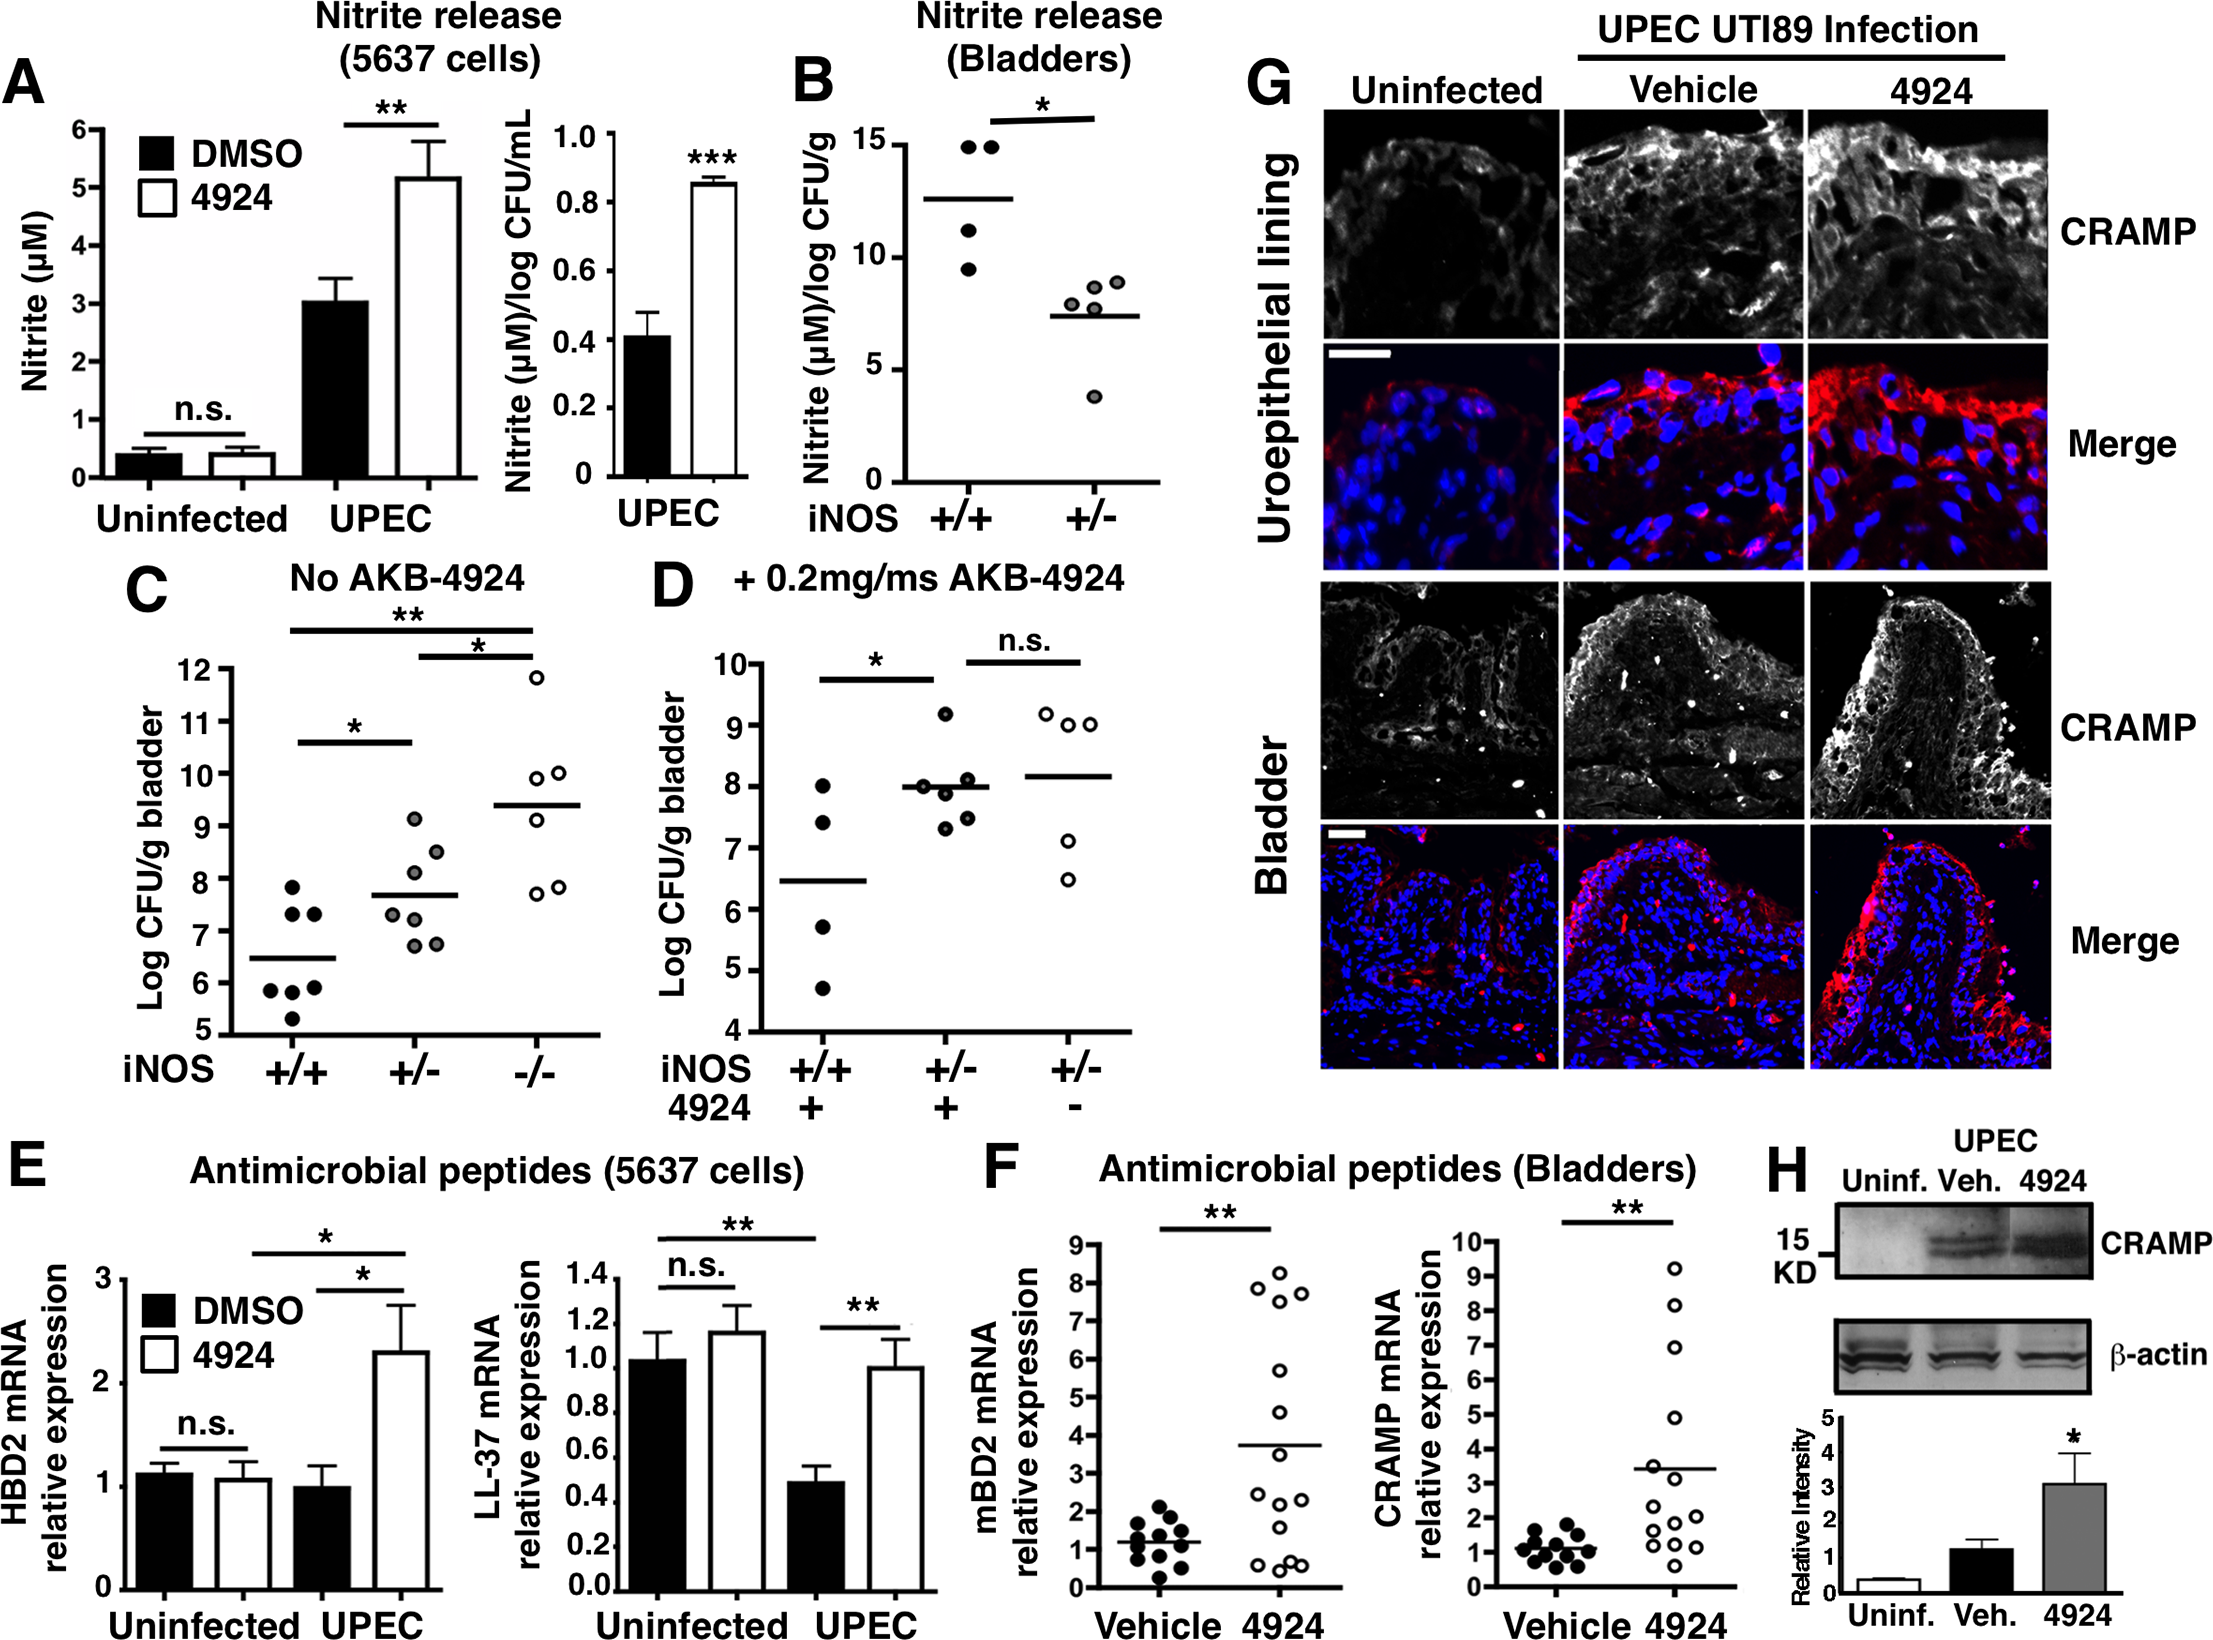 AKB-4924 pretreatment enhances production of nitric oxide and host defense peptides during UPEC infection.